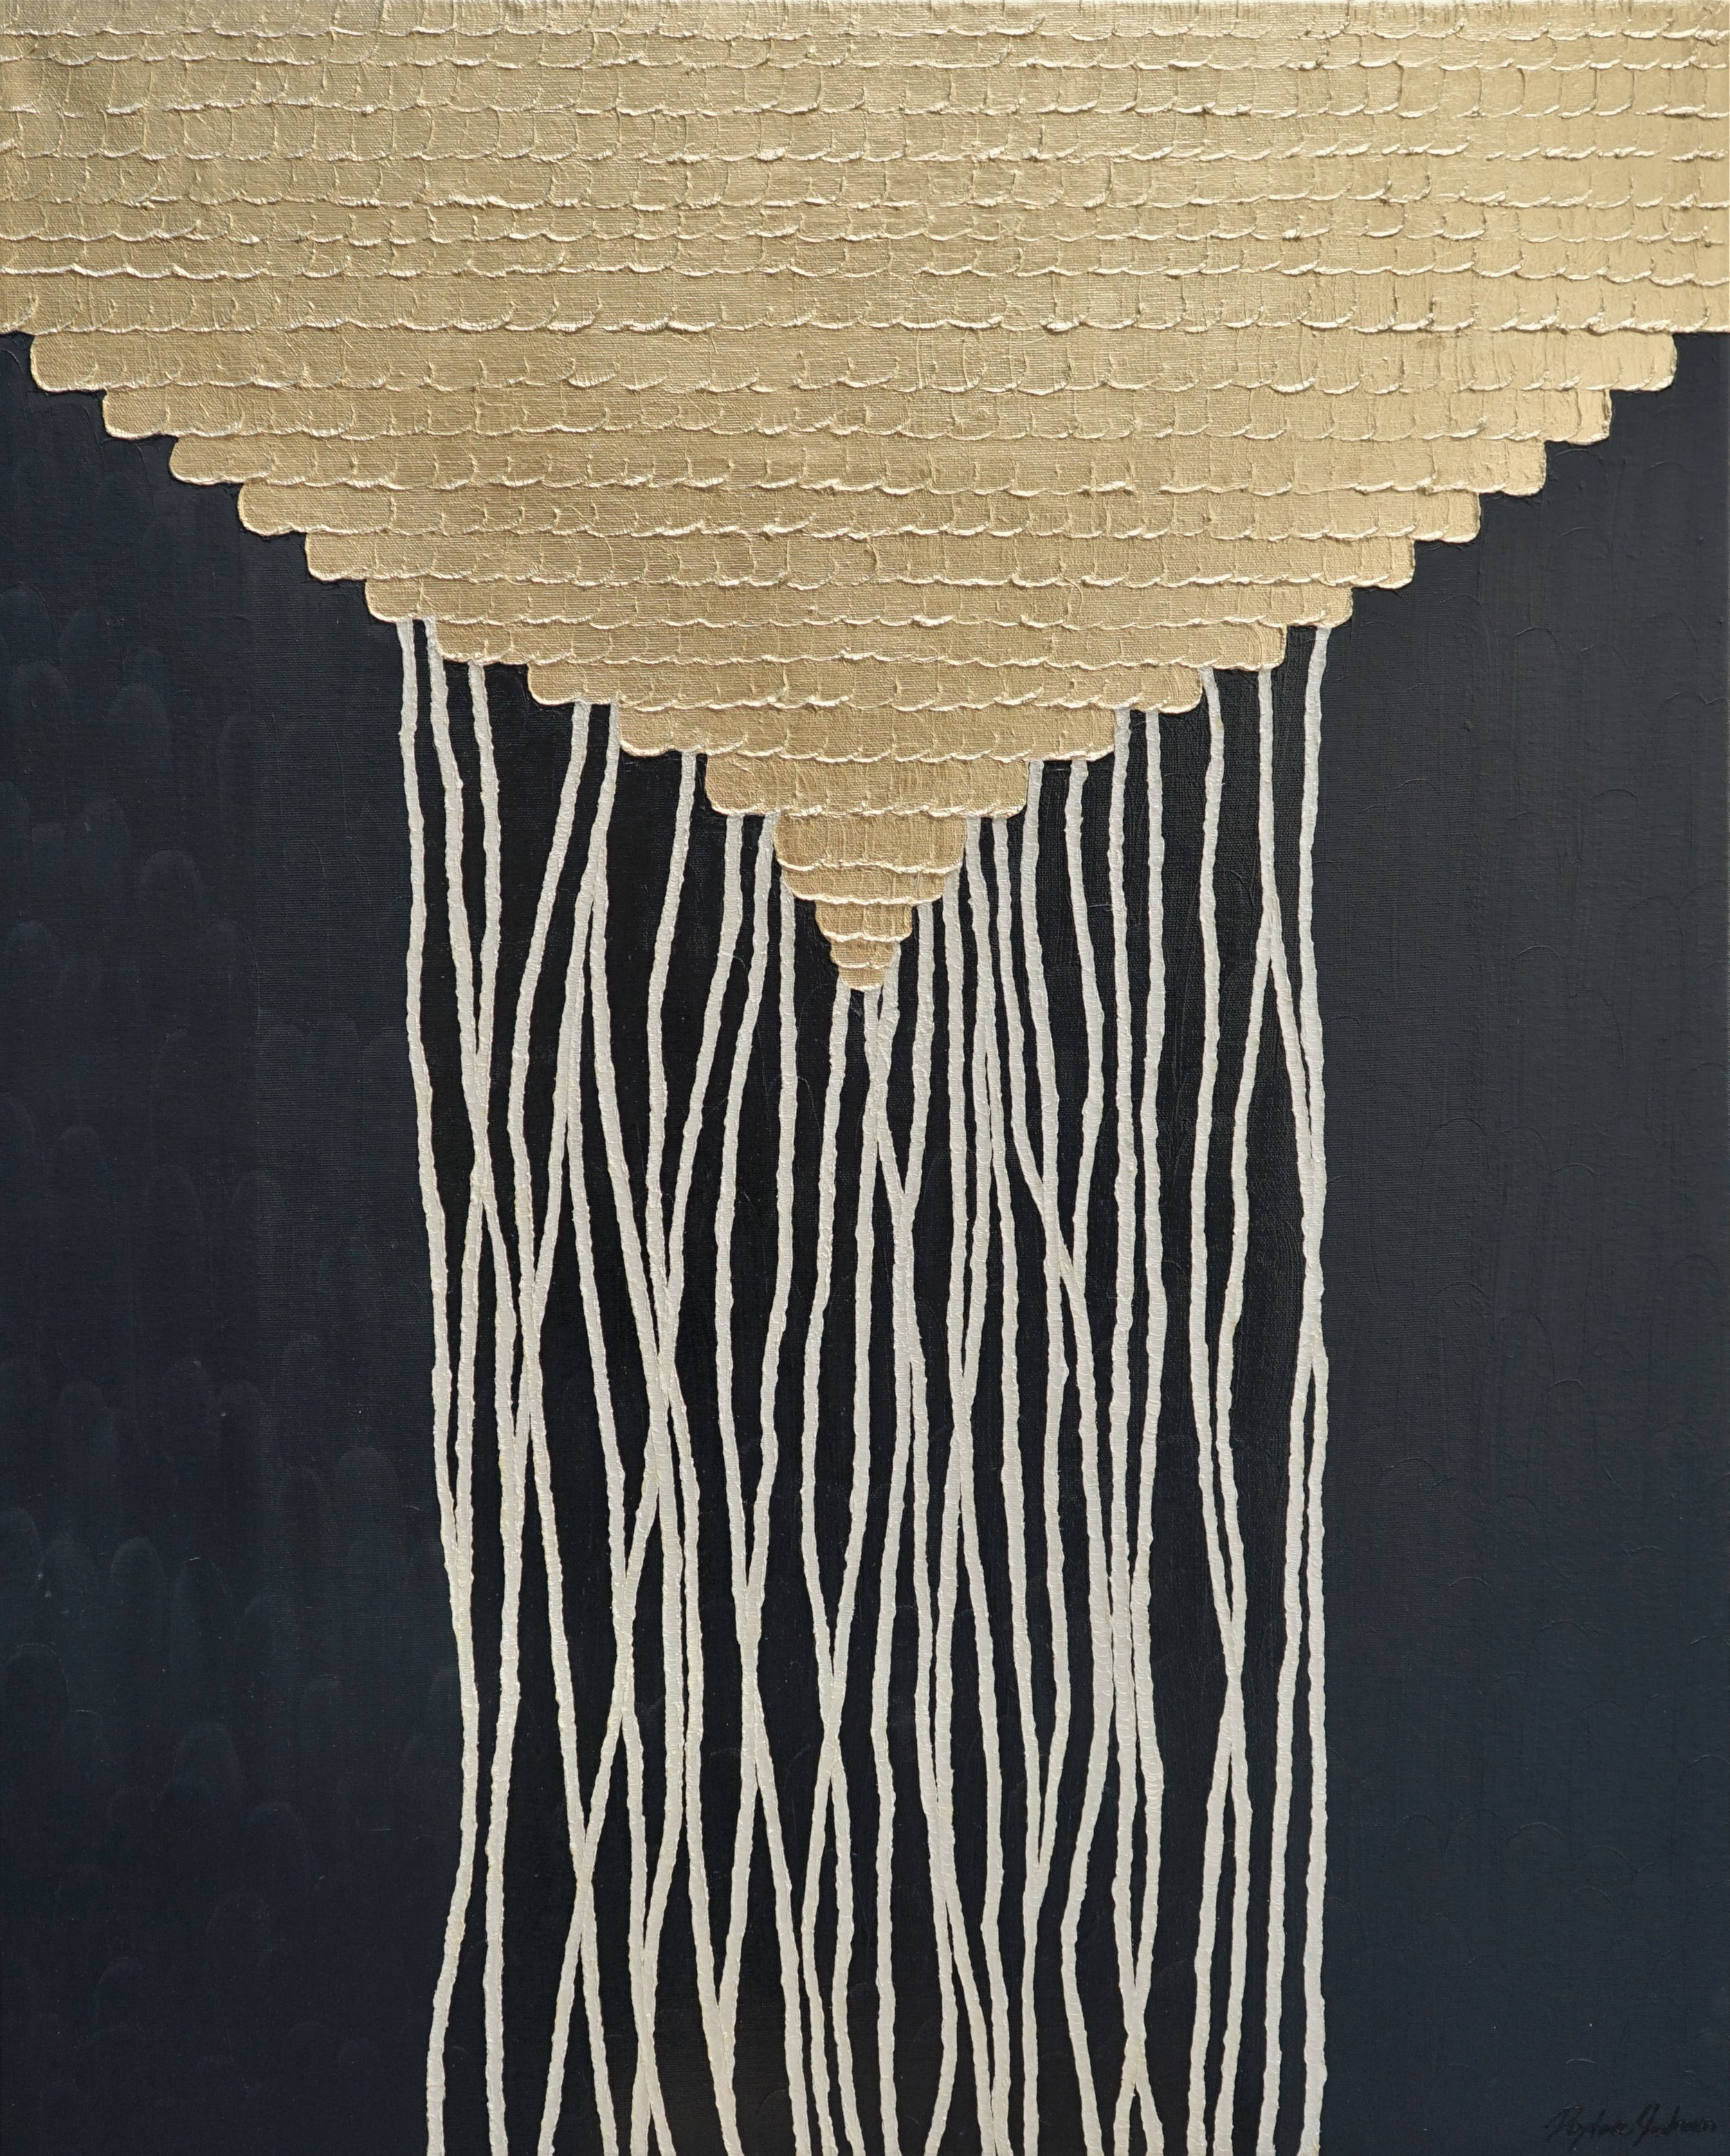 Lizzie's Rings 100 x 80 cm Mother of pearl & oil on canvas   Available To View 19,000 Sek